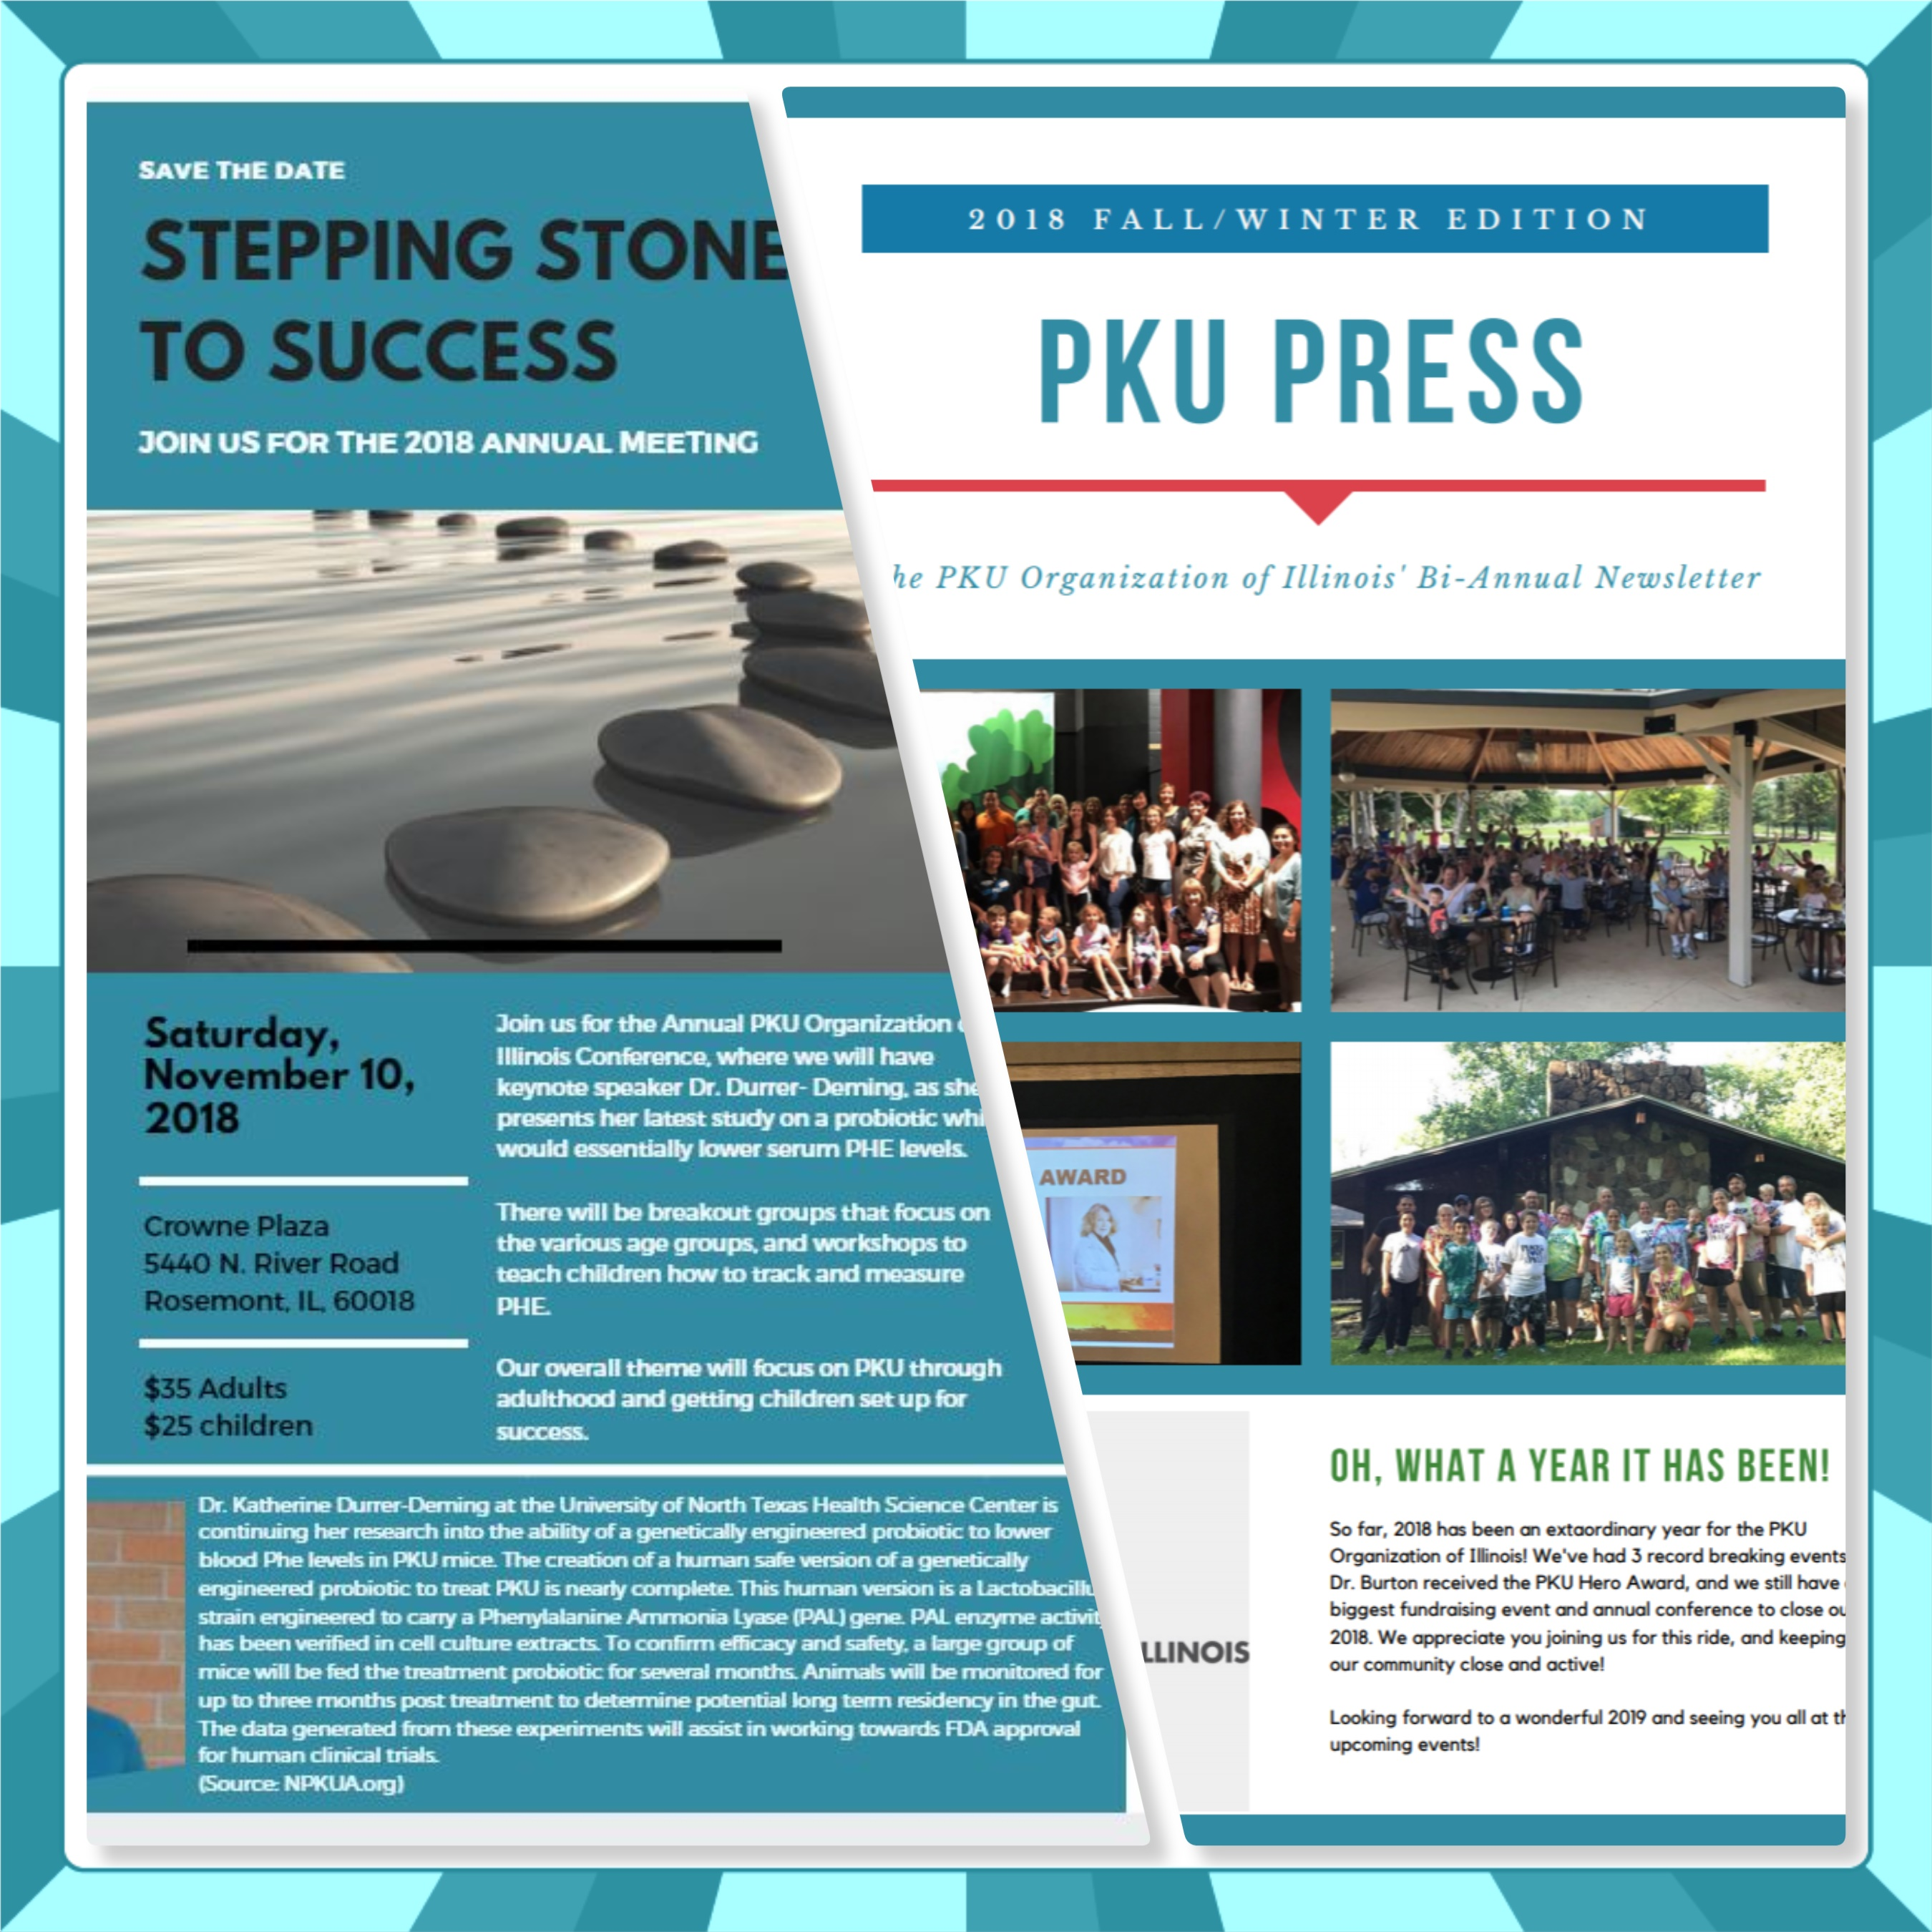 2018 Annual Meeting and PKU Press Fall/Winter Edition